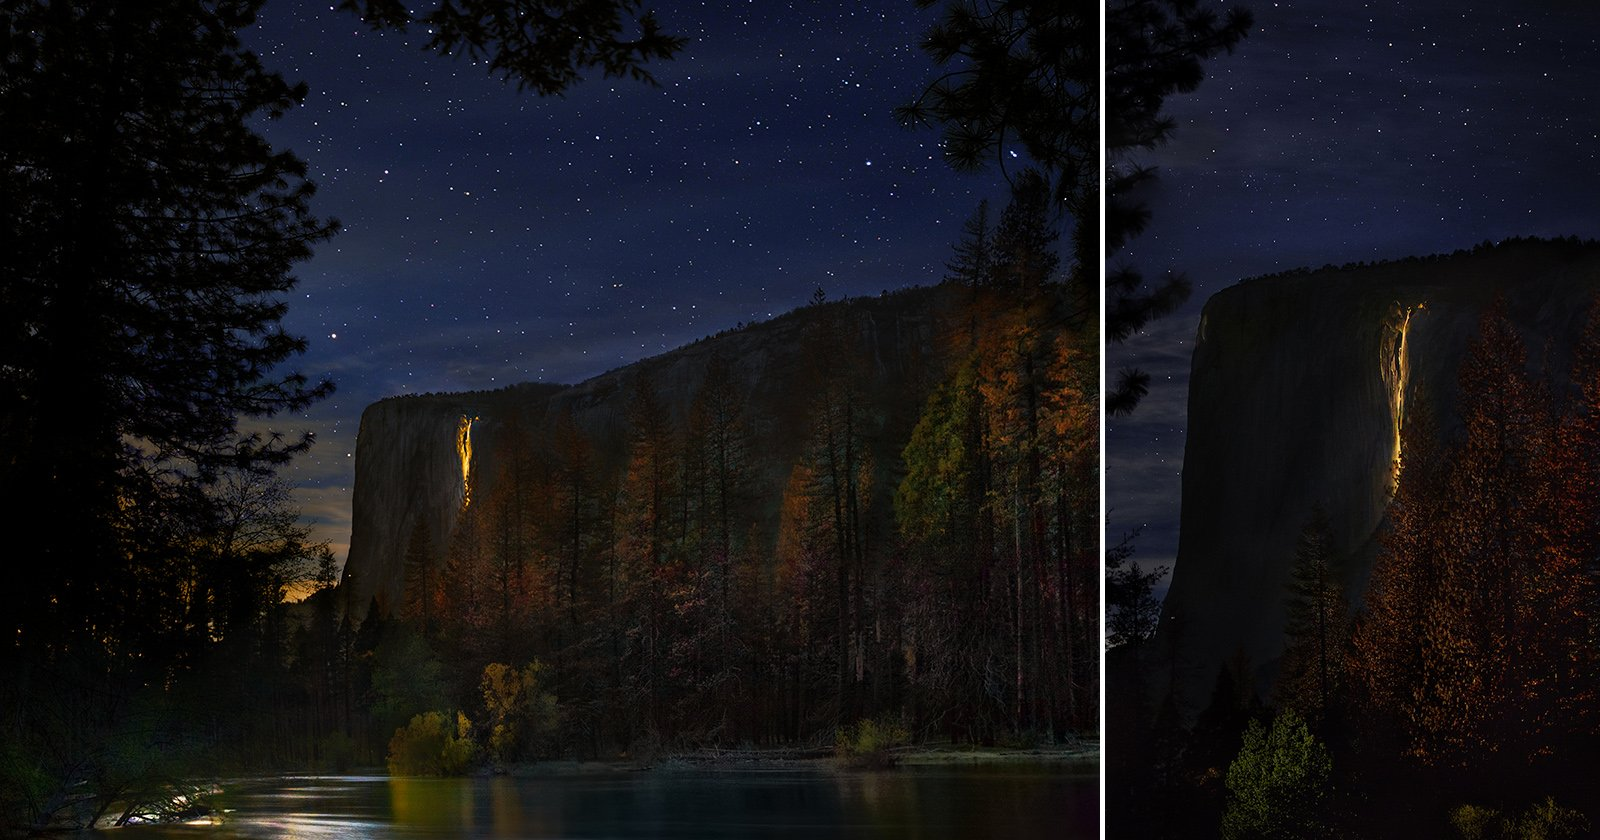 Capturing the Incredibly Rare Moonlit Firefall at Yosemite